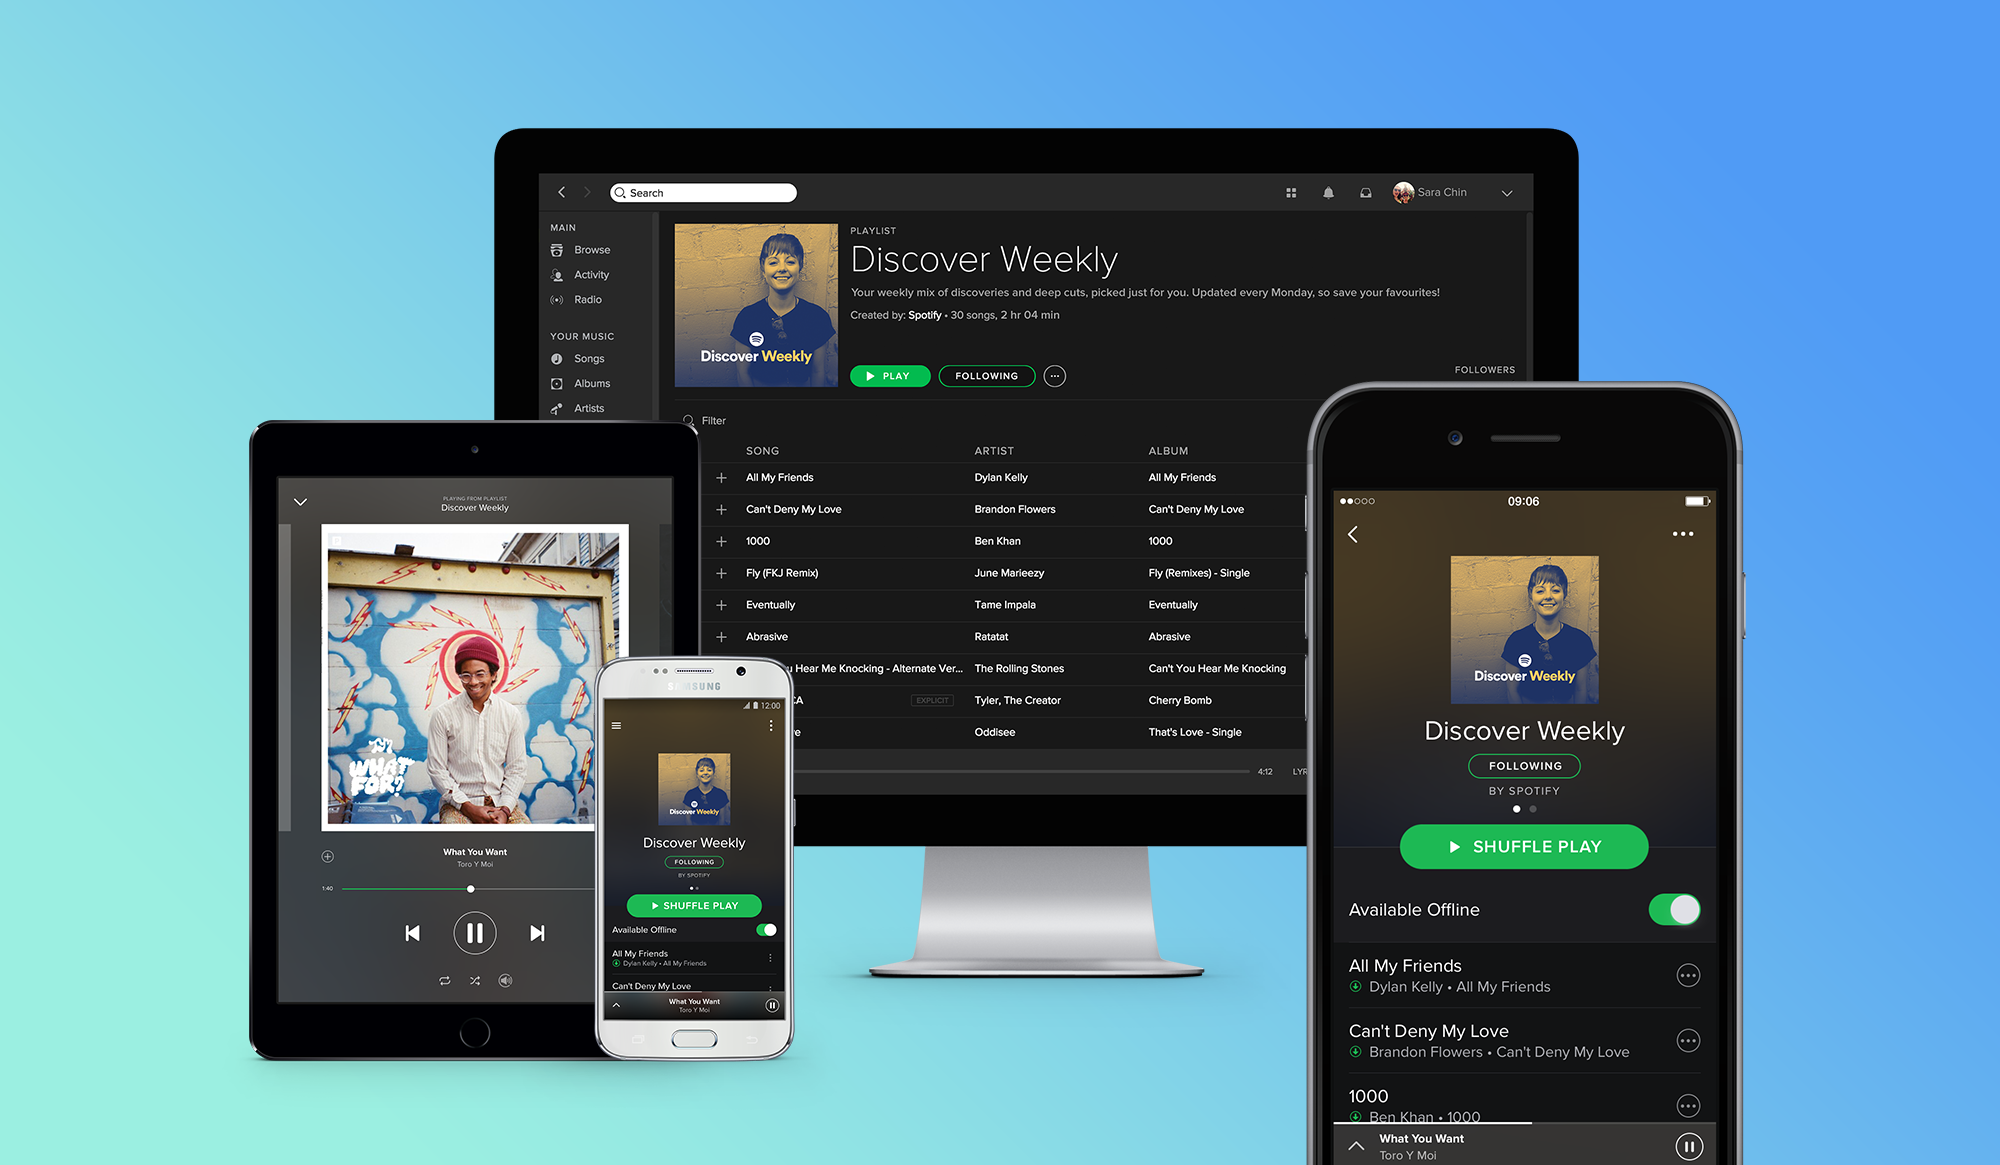 spotify launches music streaming service in vietnam